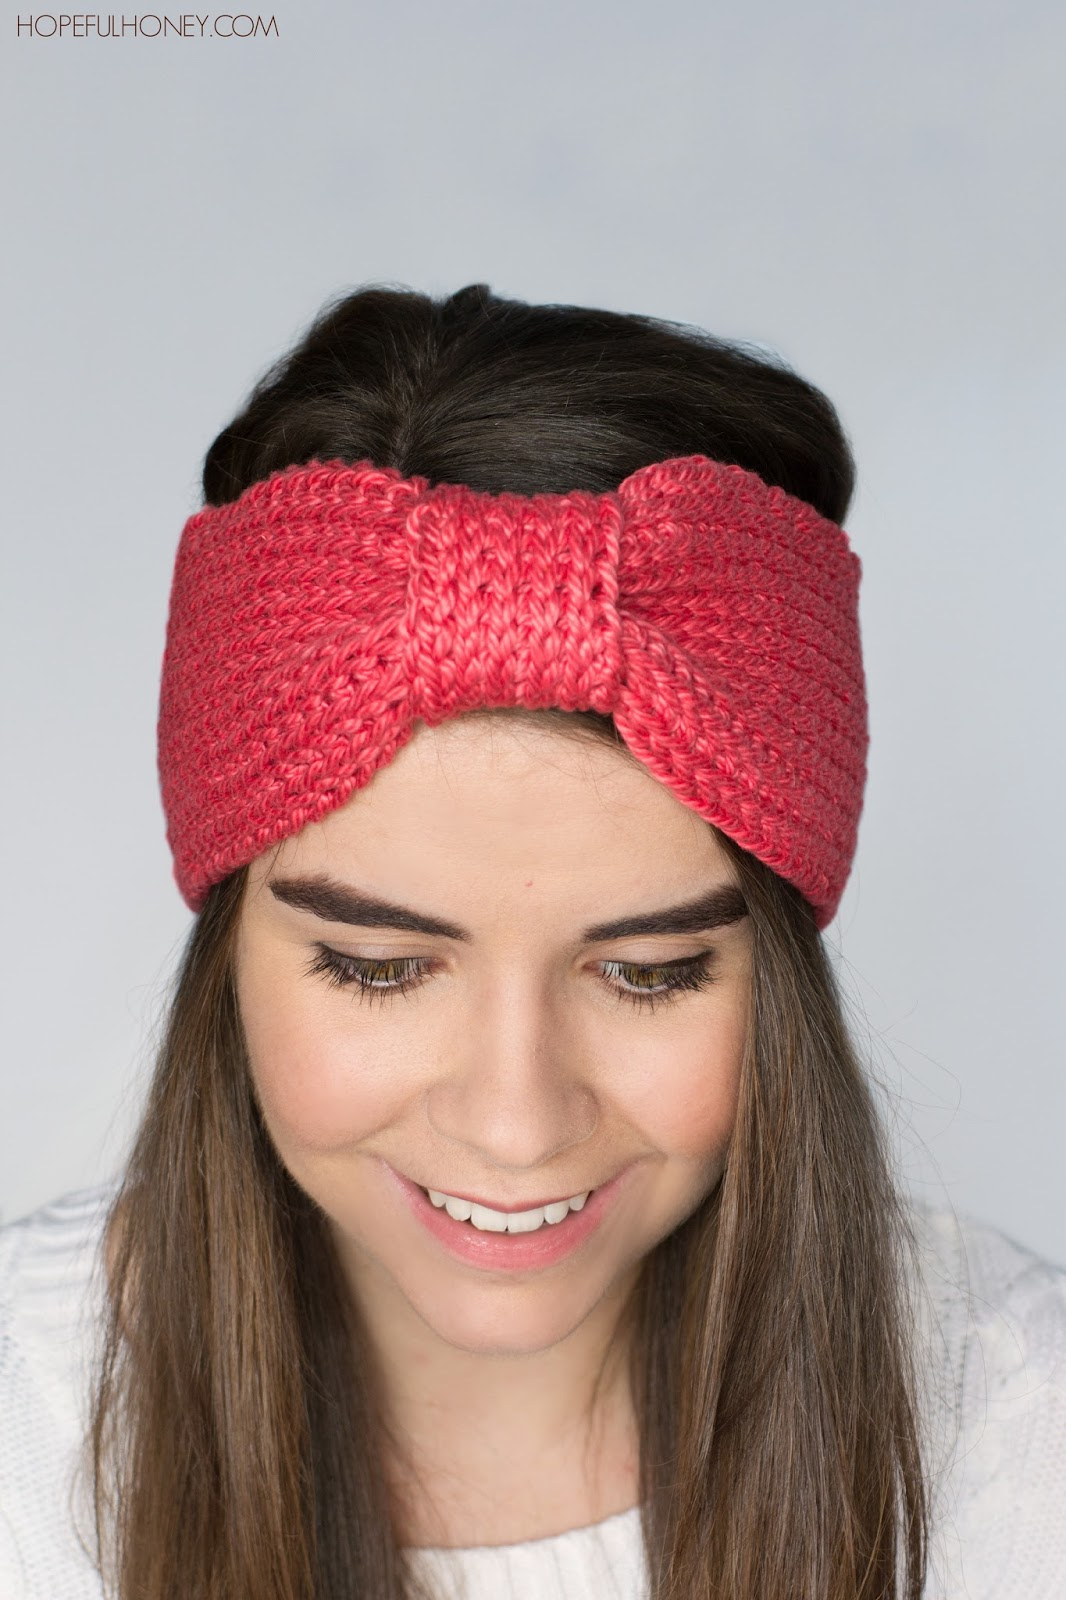 ... Honey Craft, Crochet, Create: Coral Candy Headband Crochet Pattern